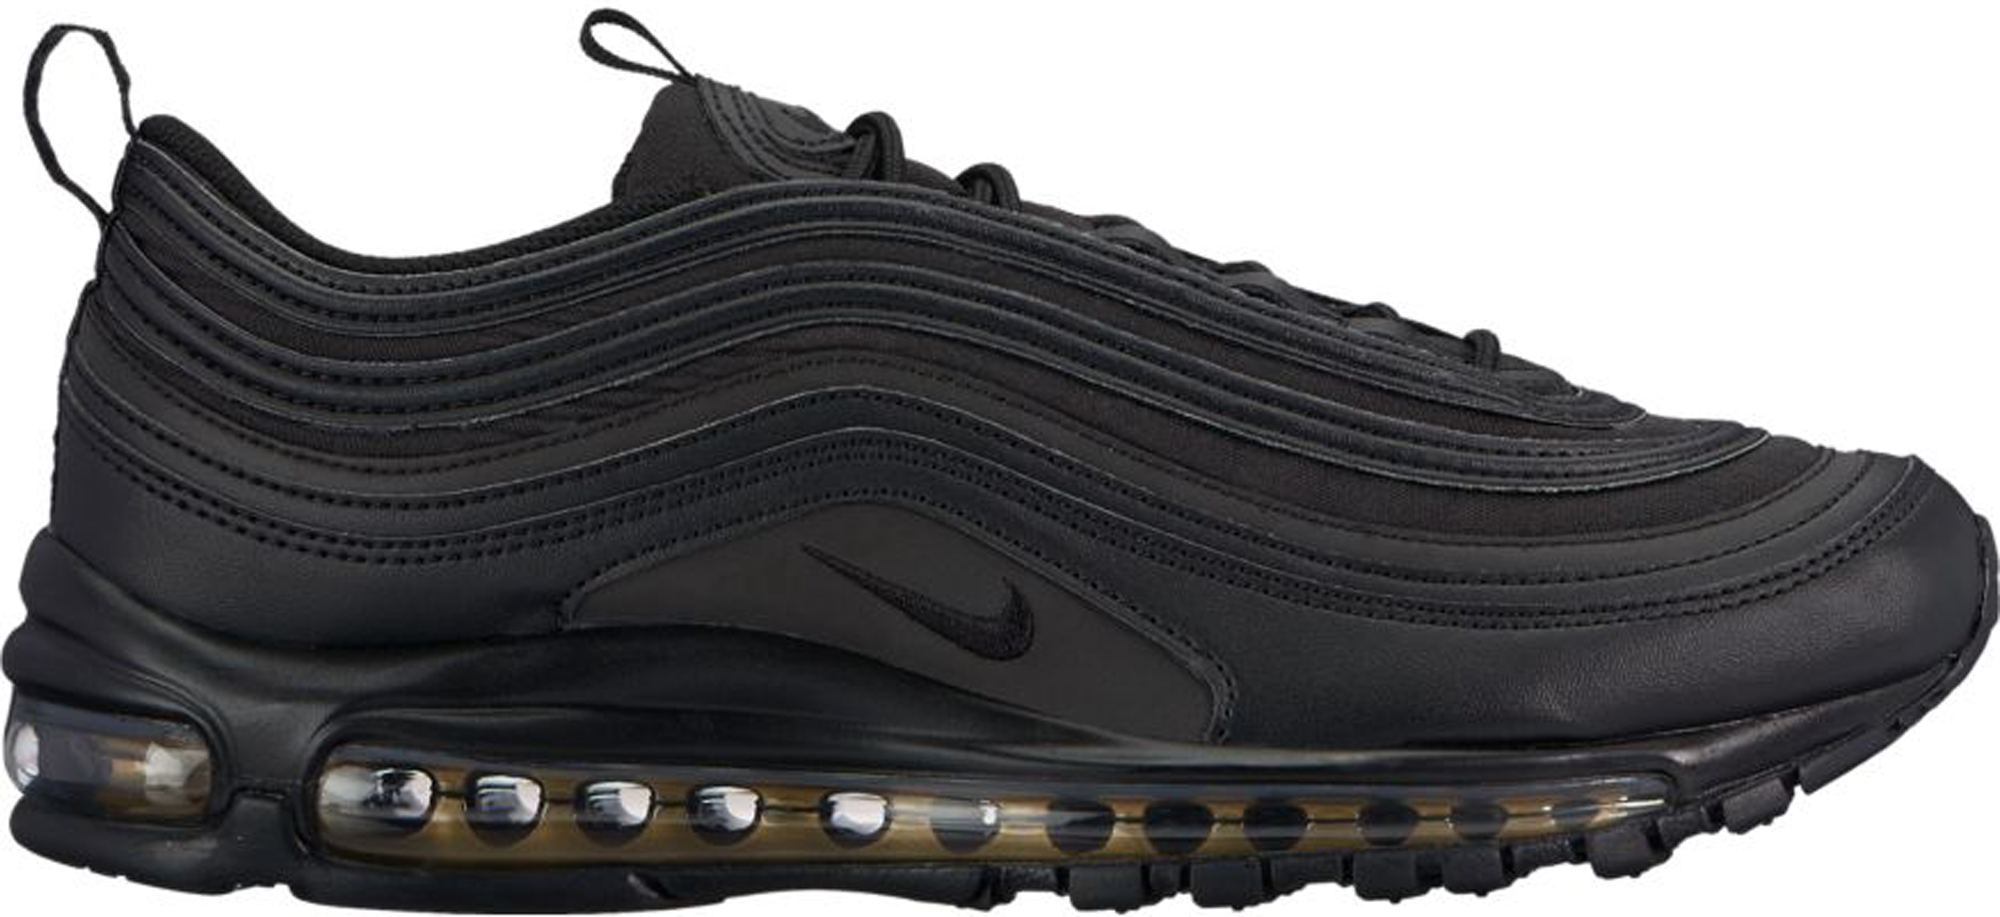 best sneakers b4fd6 56423 Air Max 97 Black Reflective Gold